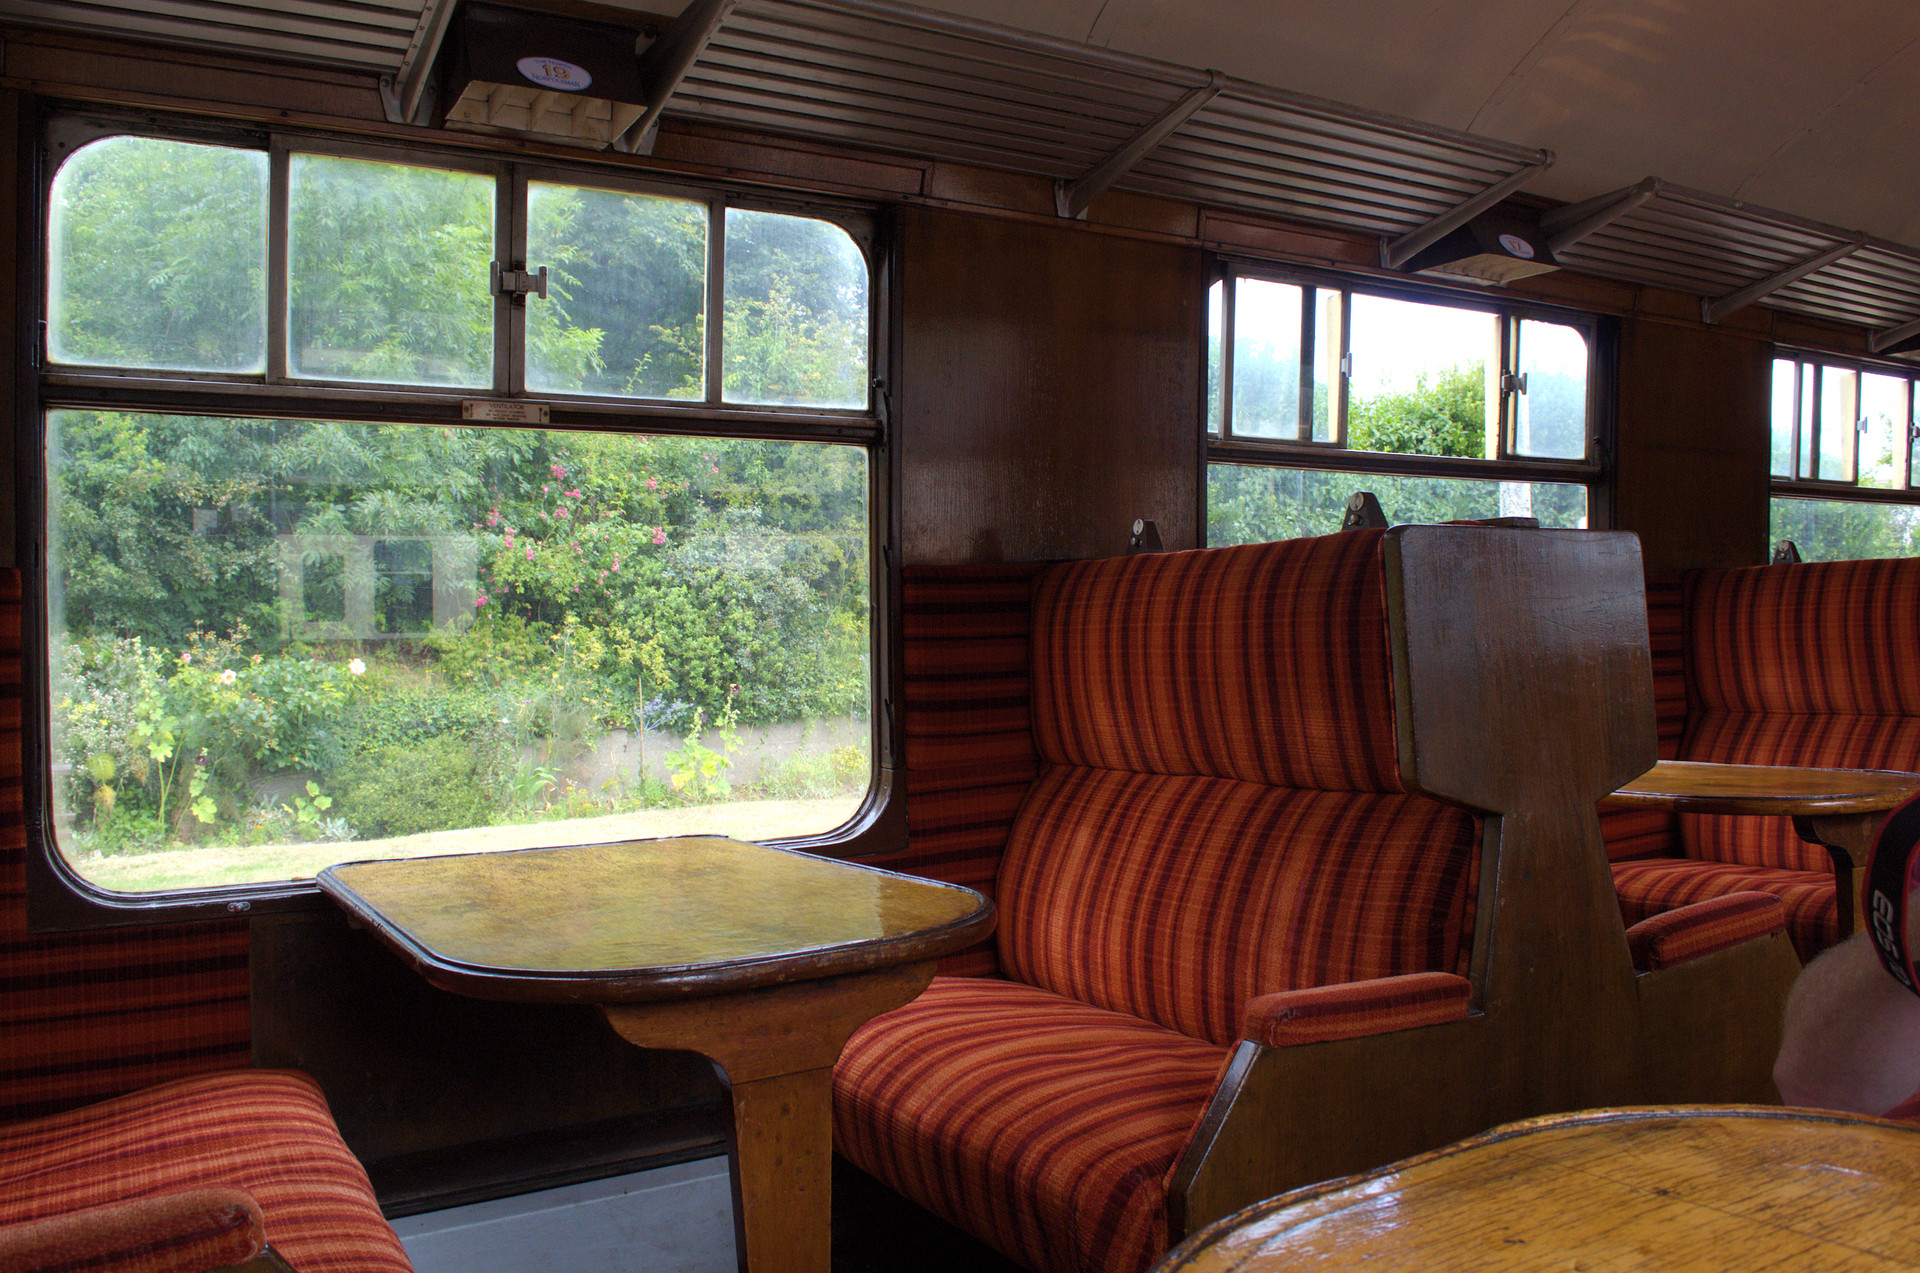 NORTH NORFOLK RAILWAY CARRIAGE INSIDE VIEW